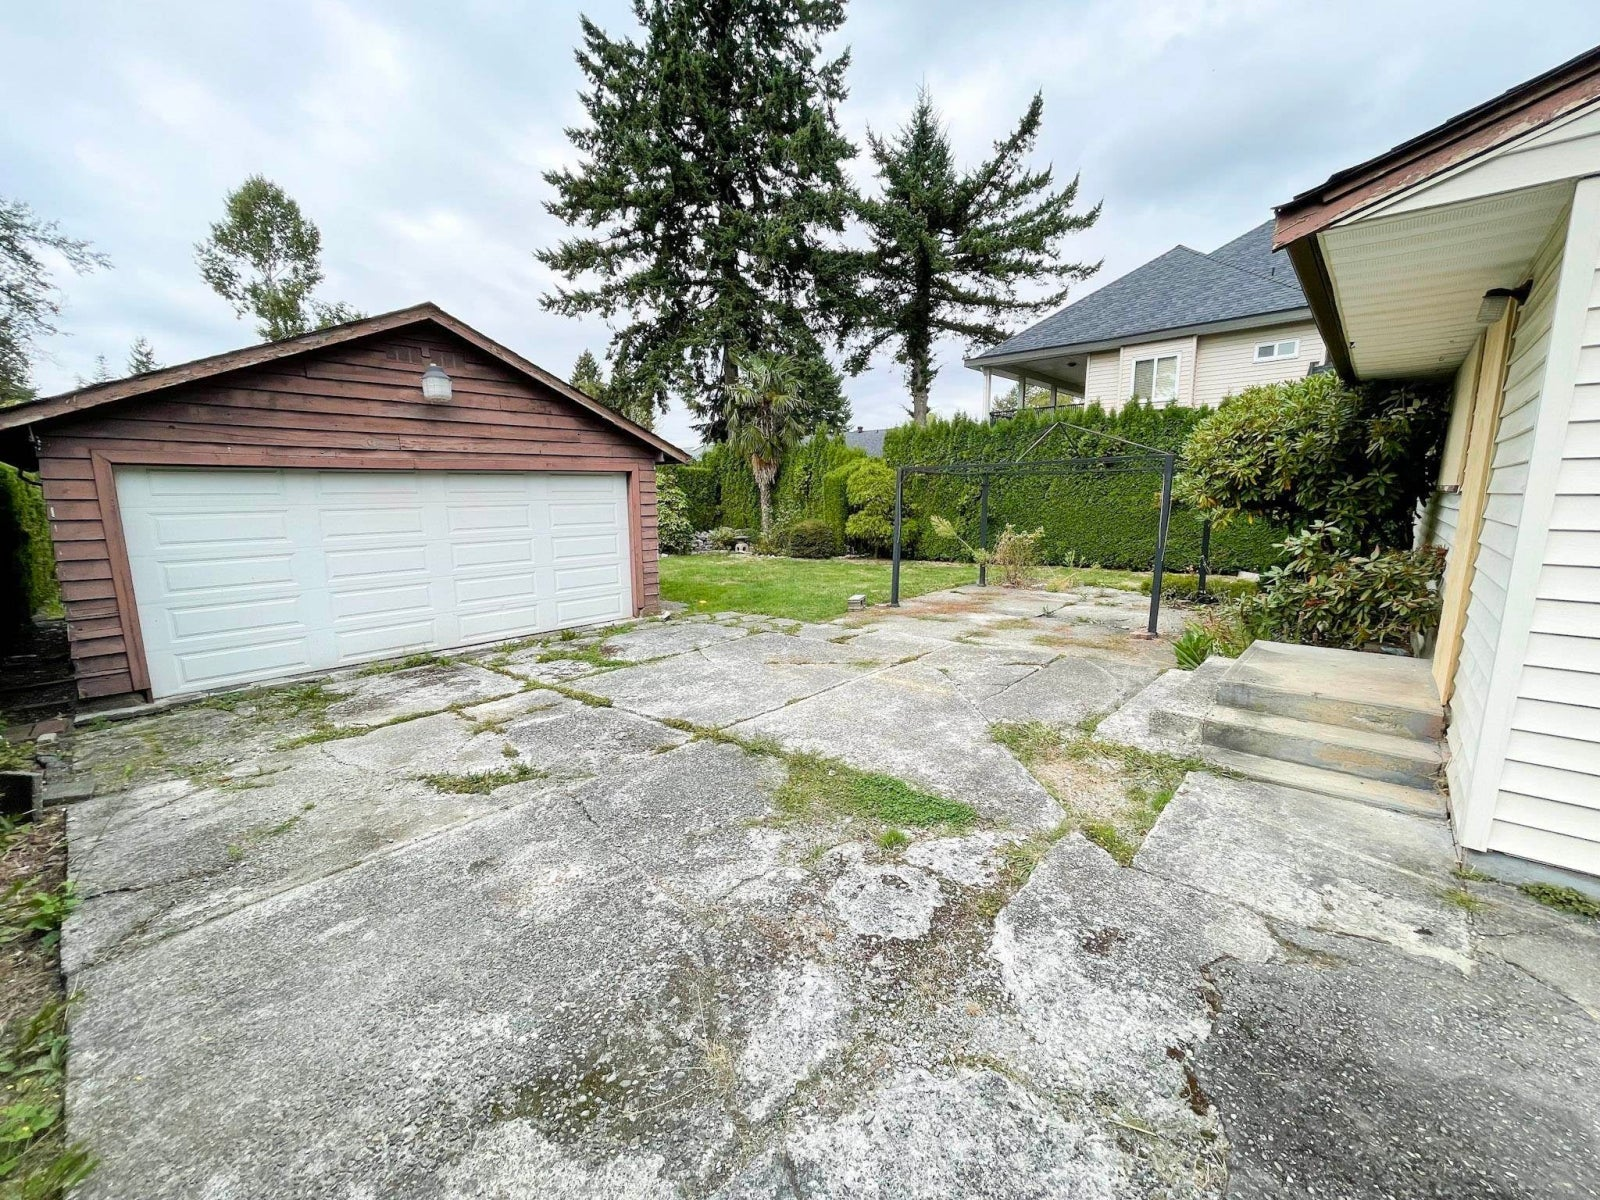 10871 139A STREET - Bolivar Heights House/Single Family for sale, 2 Bedrooms (R2616531) #3